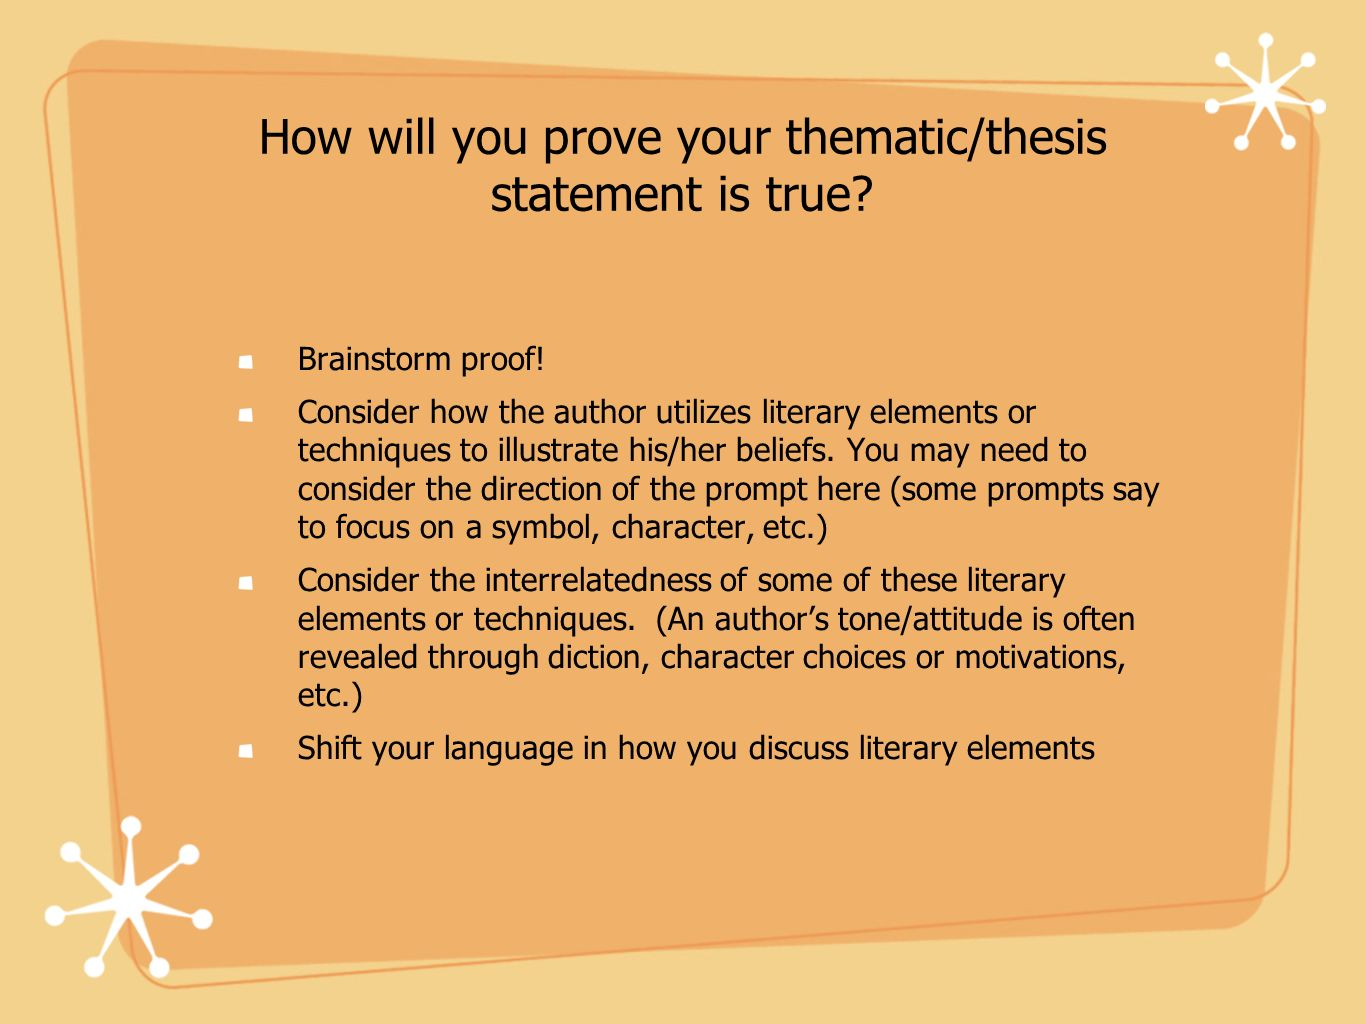 How will you prove your thematic/thesis statement is true